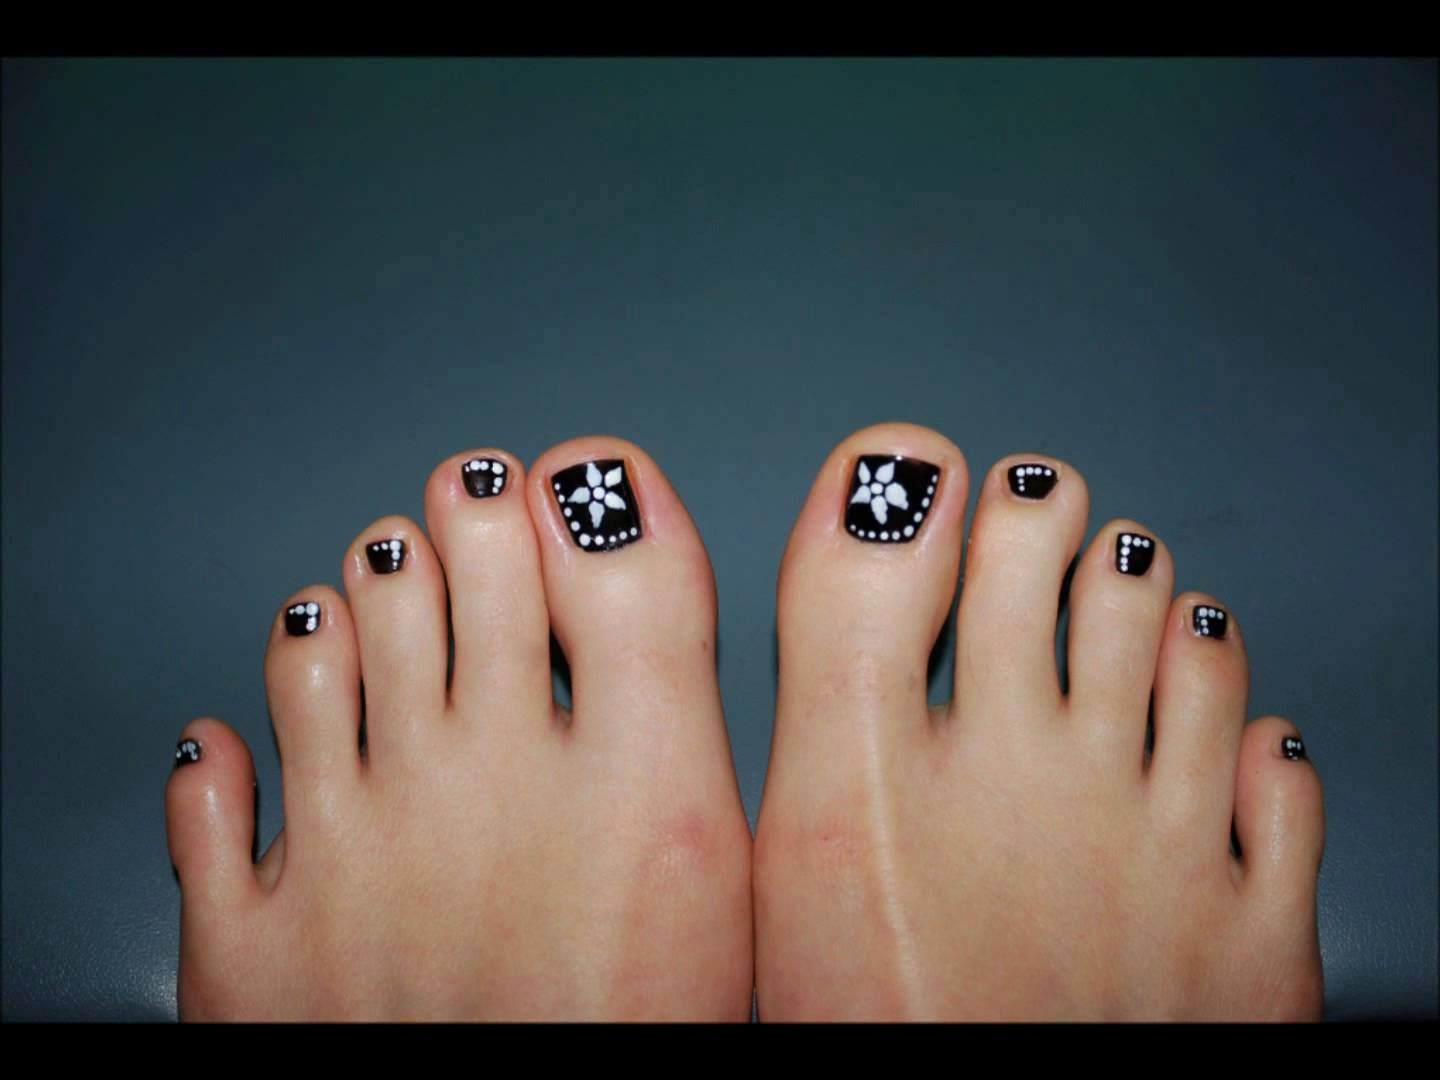 Toe Nail Design Pictures Inspirational 60 Stylish Black and White Nail Art Designs for toe Nails